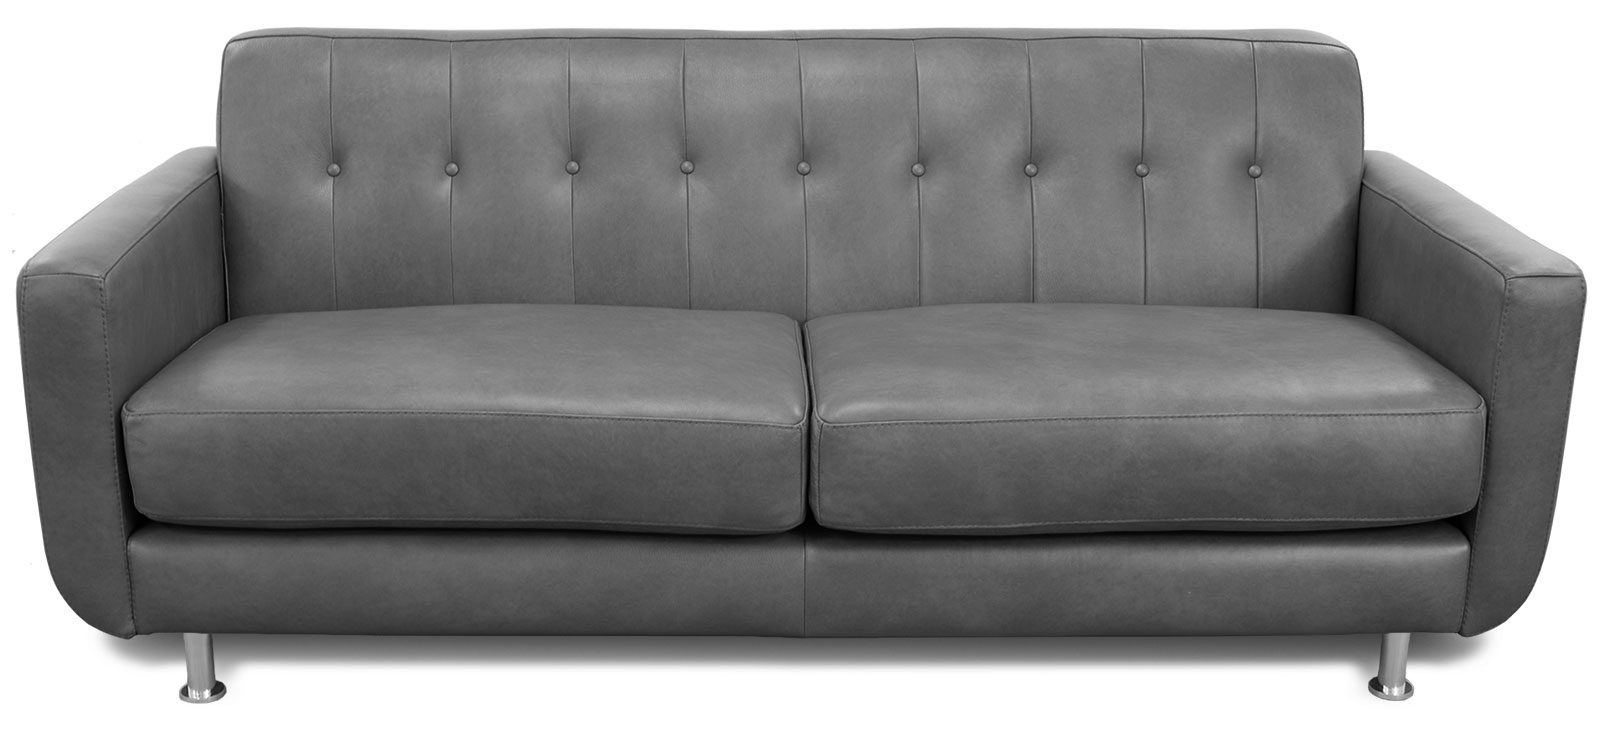 Greta 2 Cushion Sofa 3